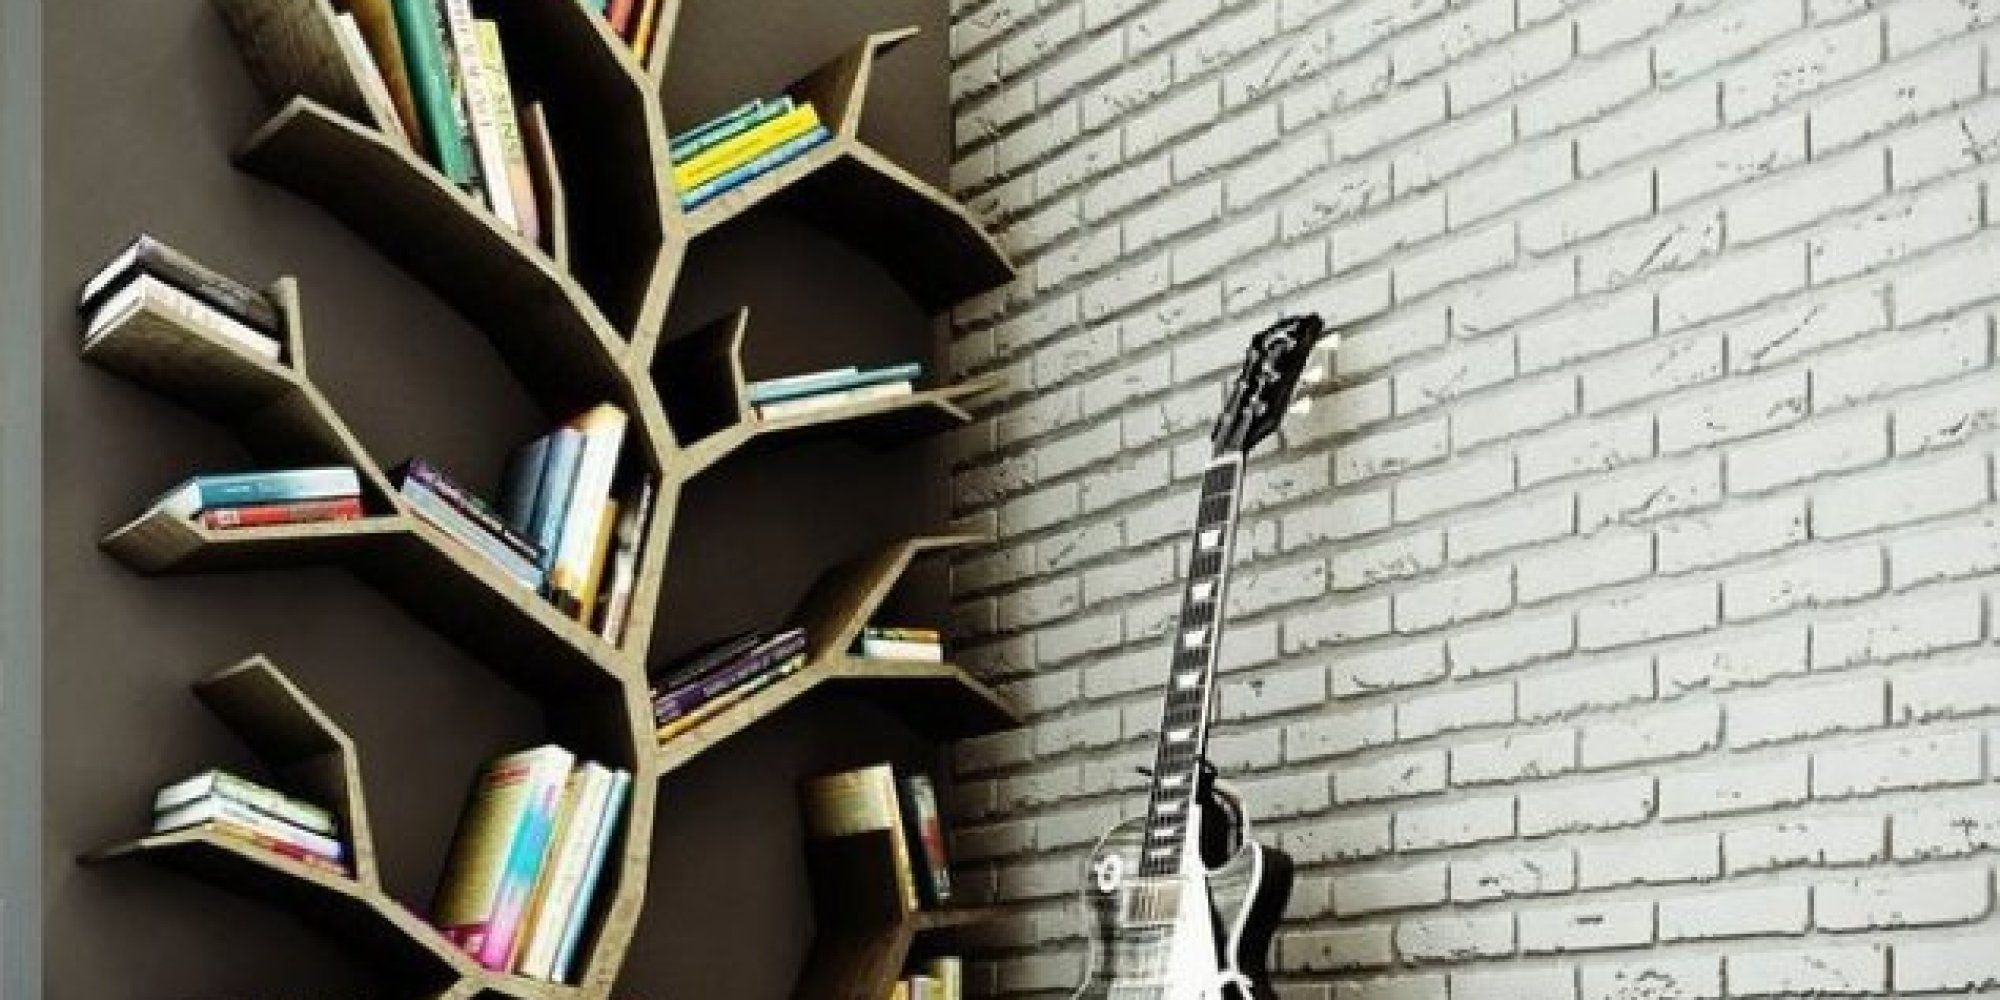 Fabulous 17 Best Images About Diy Bookshelf For Nursery On Pinterest Tree Largest Home Design Picture Inspirations Pitcheantrous